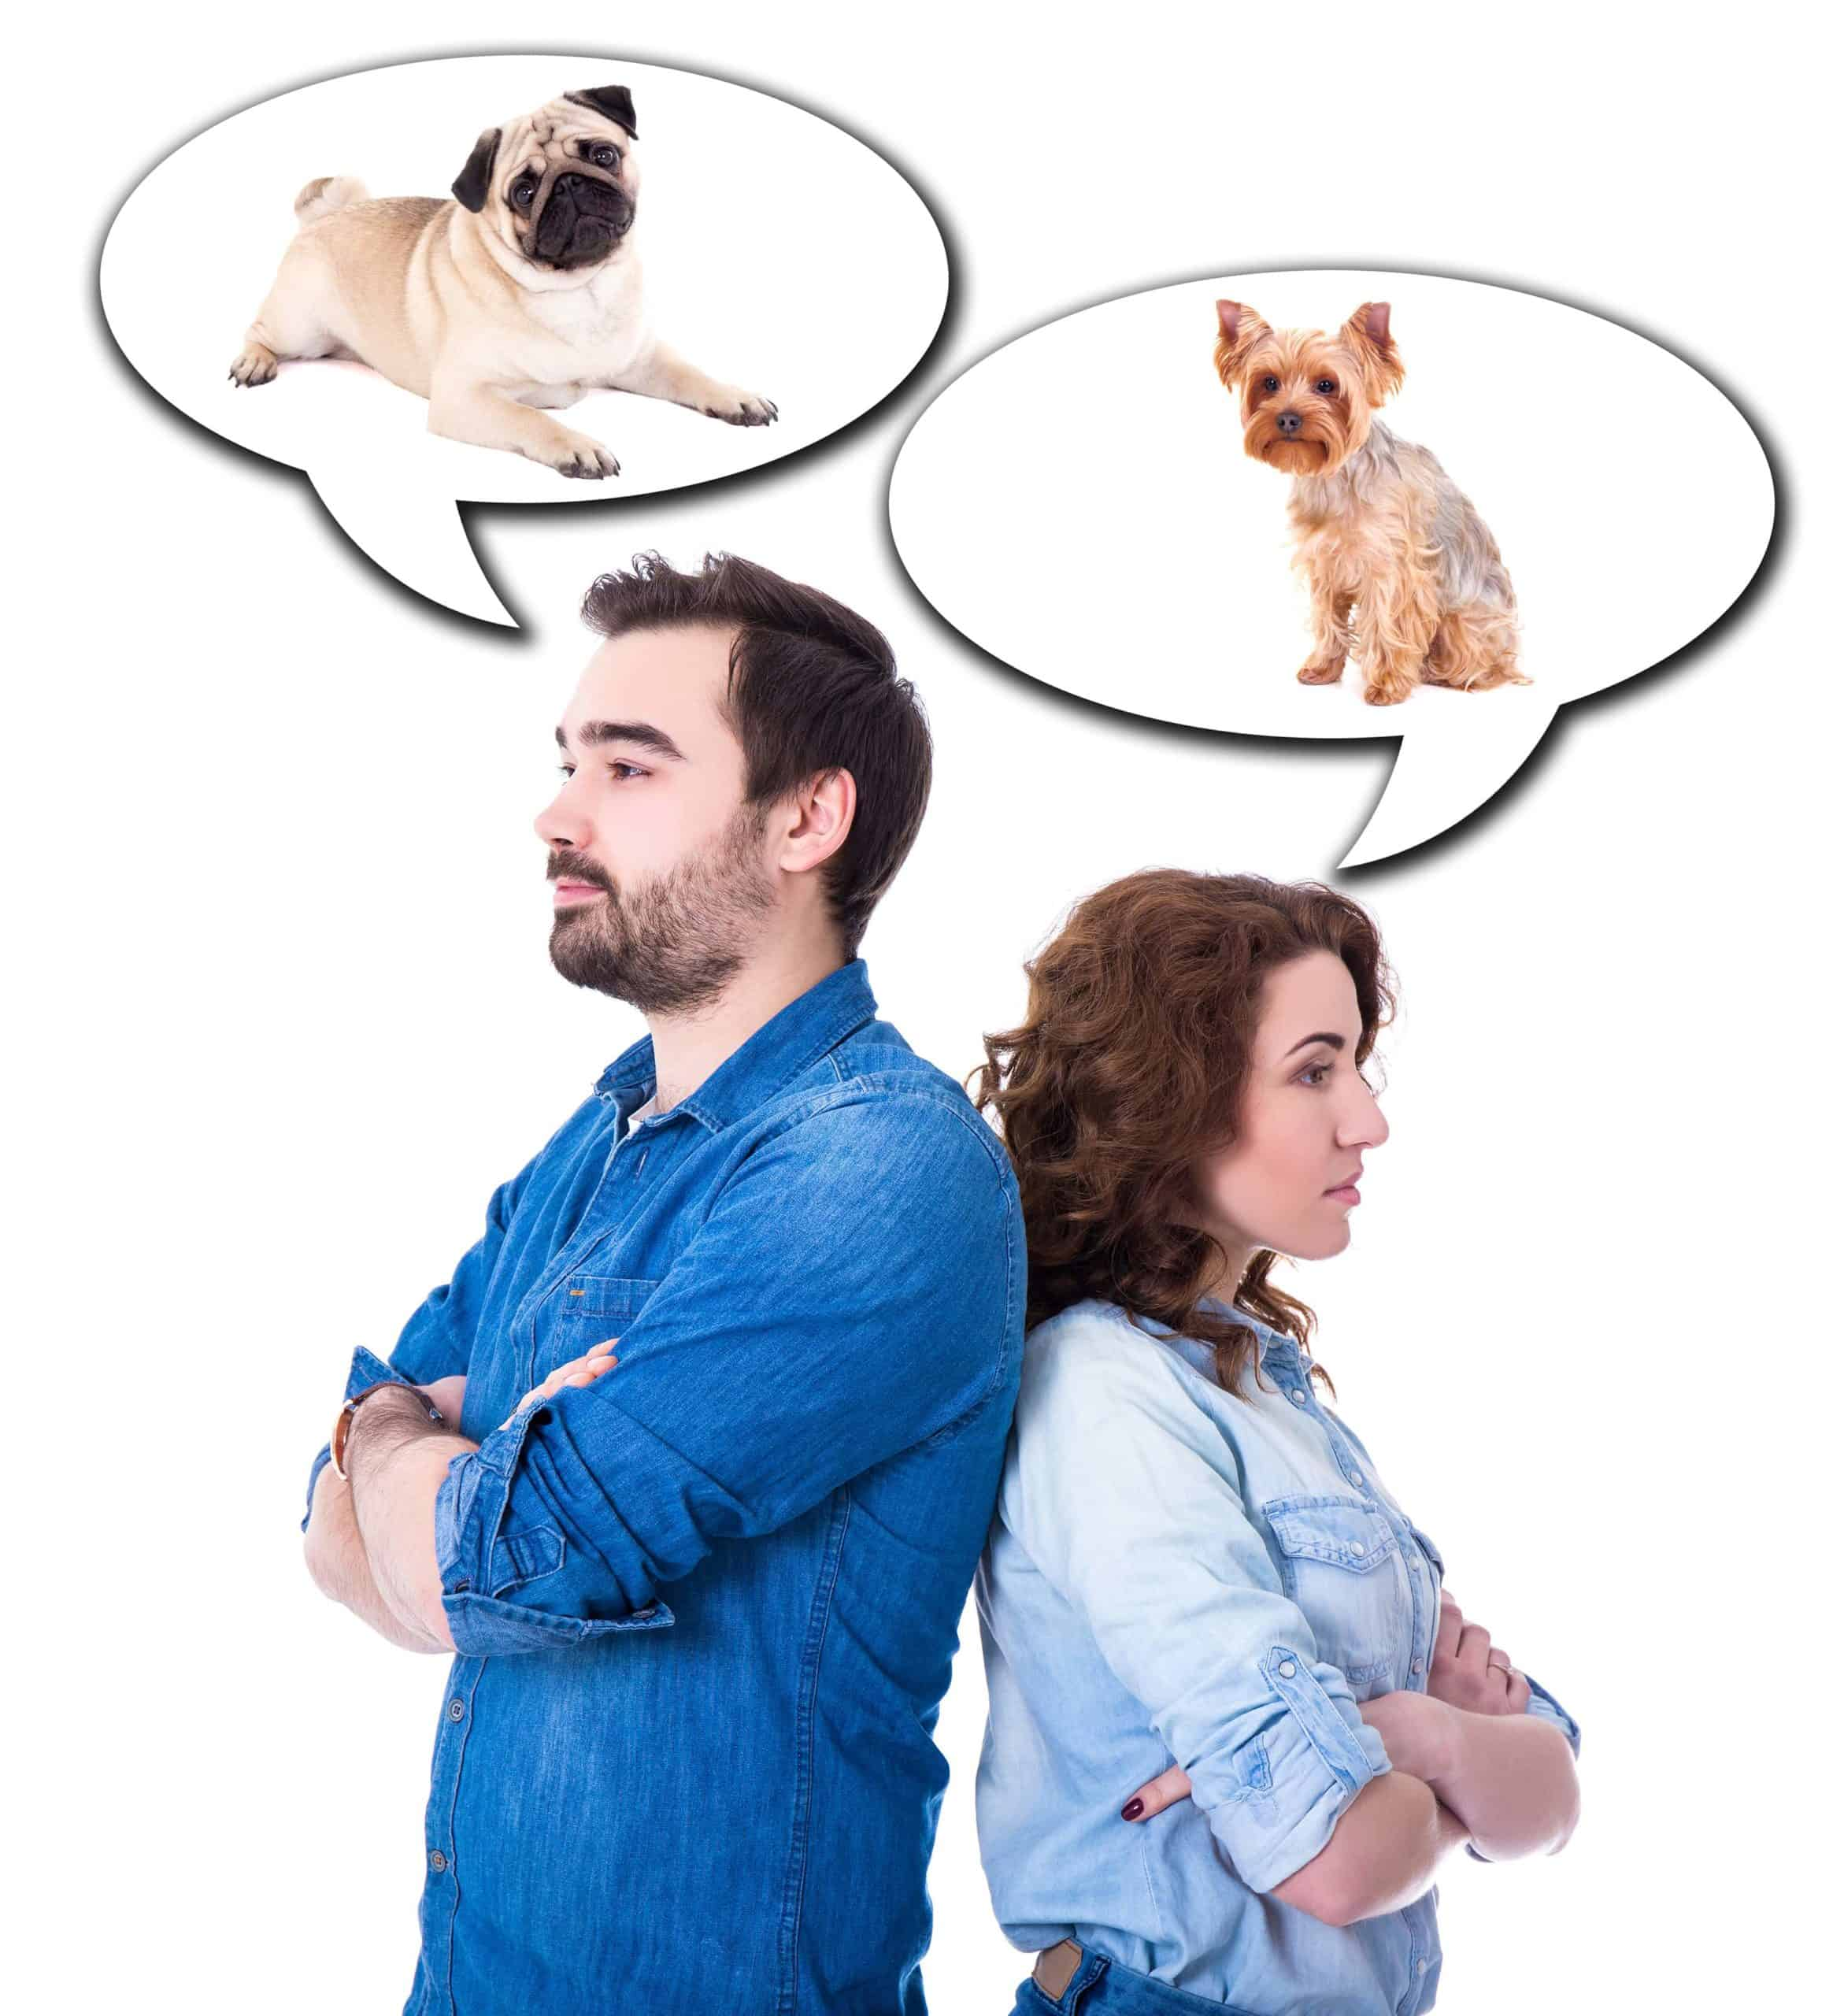 Young couple argues about dogs in photo illustration. When crafting a dog custody agreement, consider who has the most space and time to provide the best care for your dog.